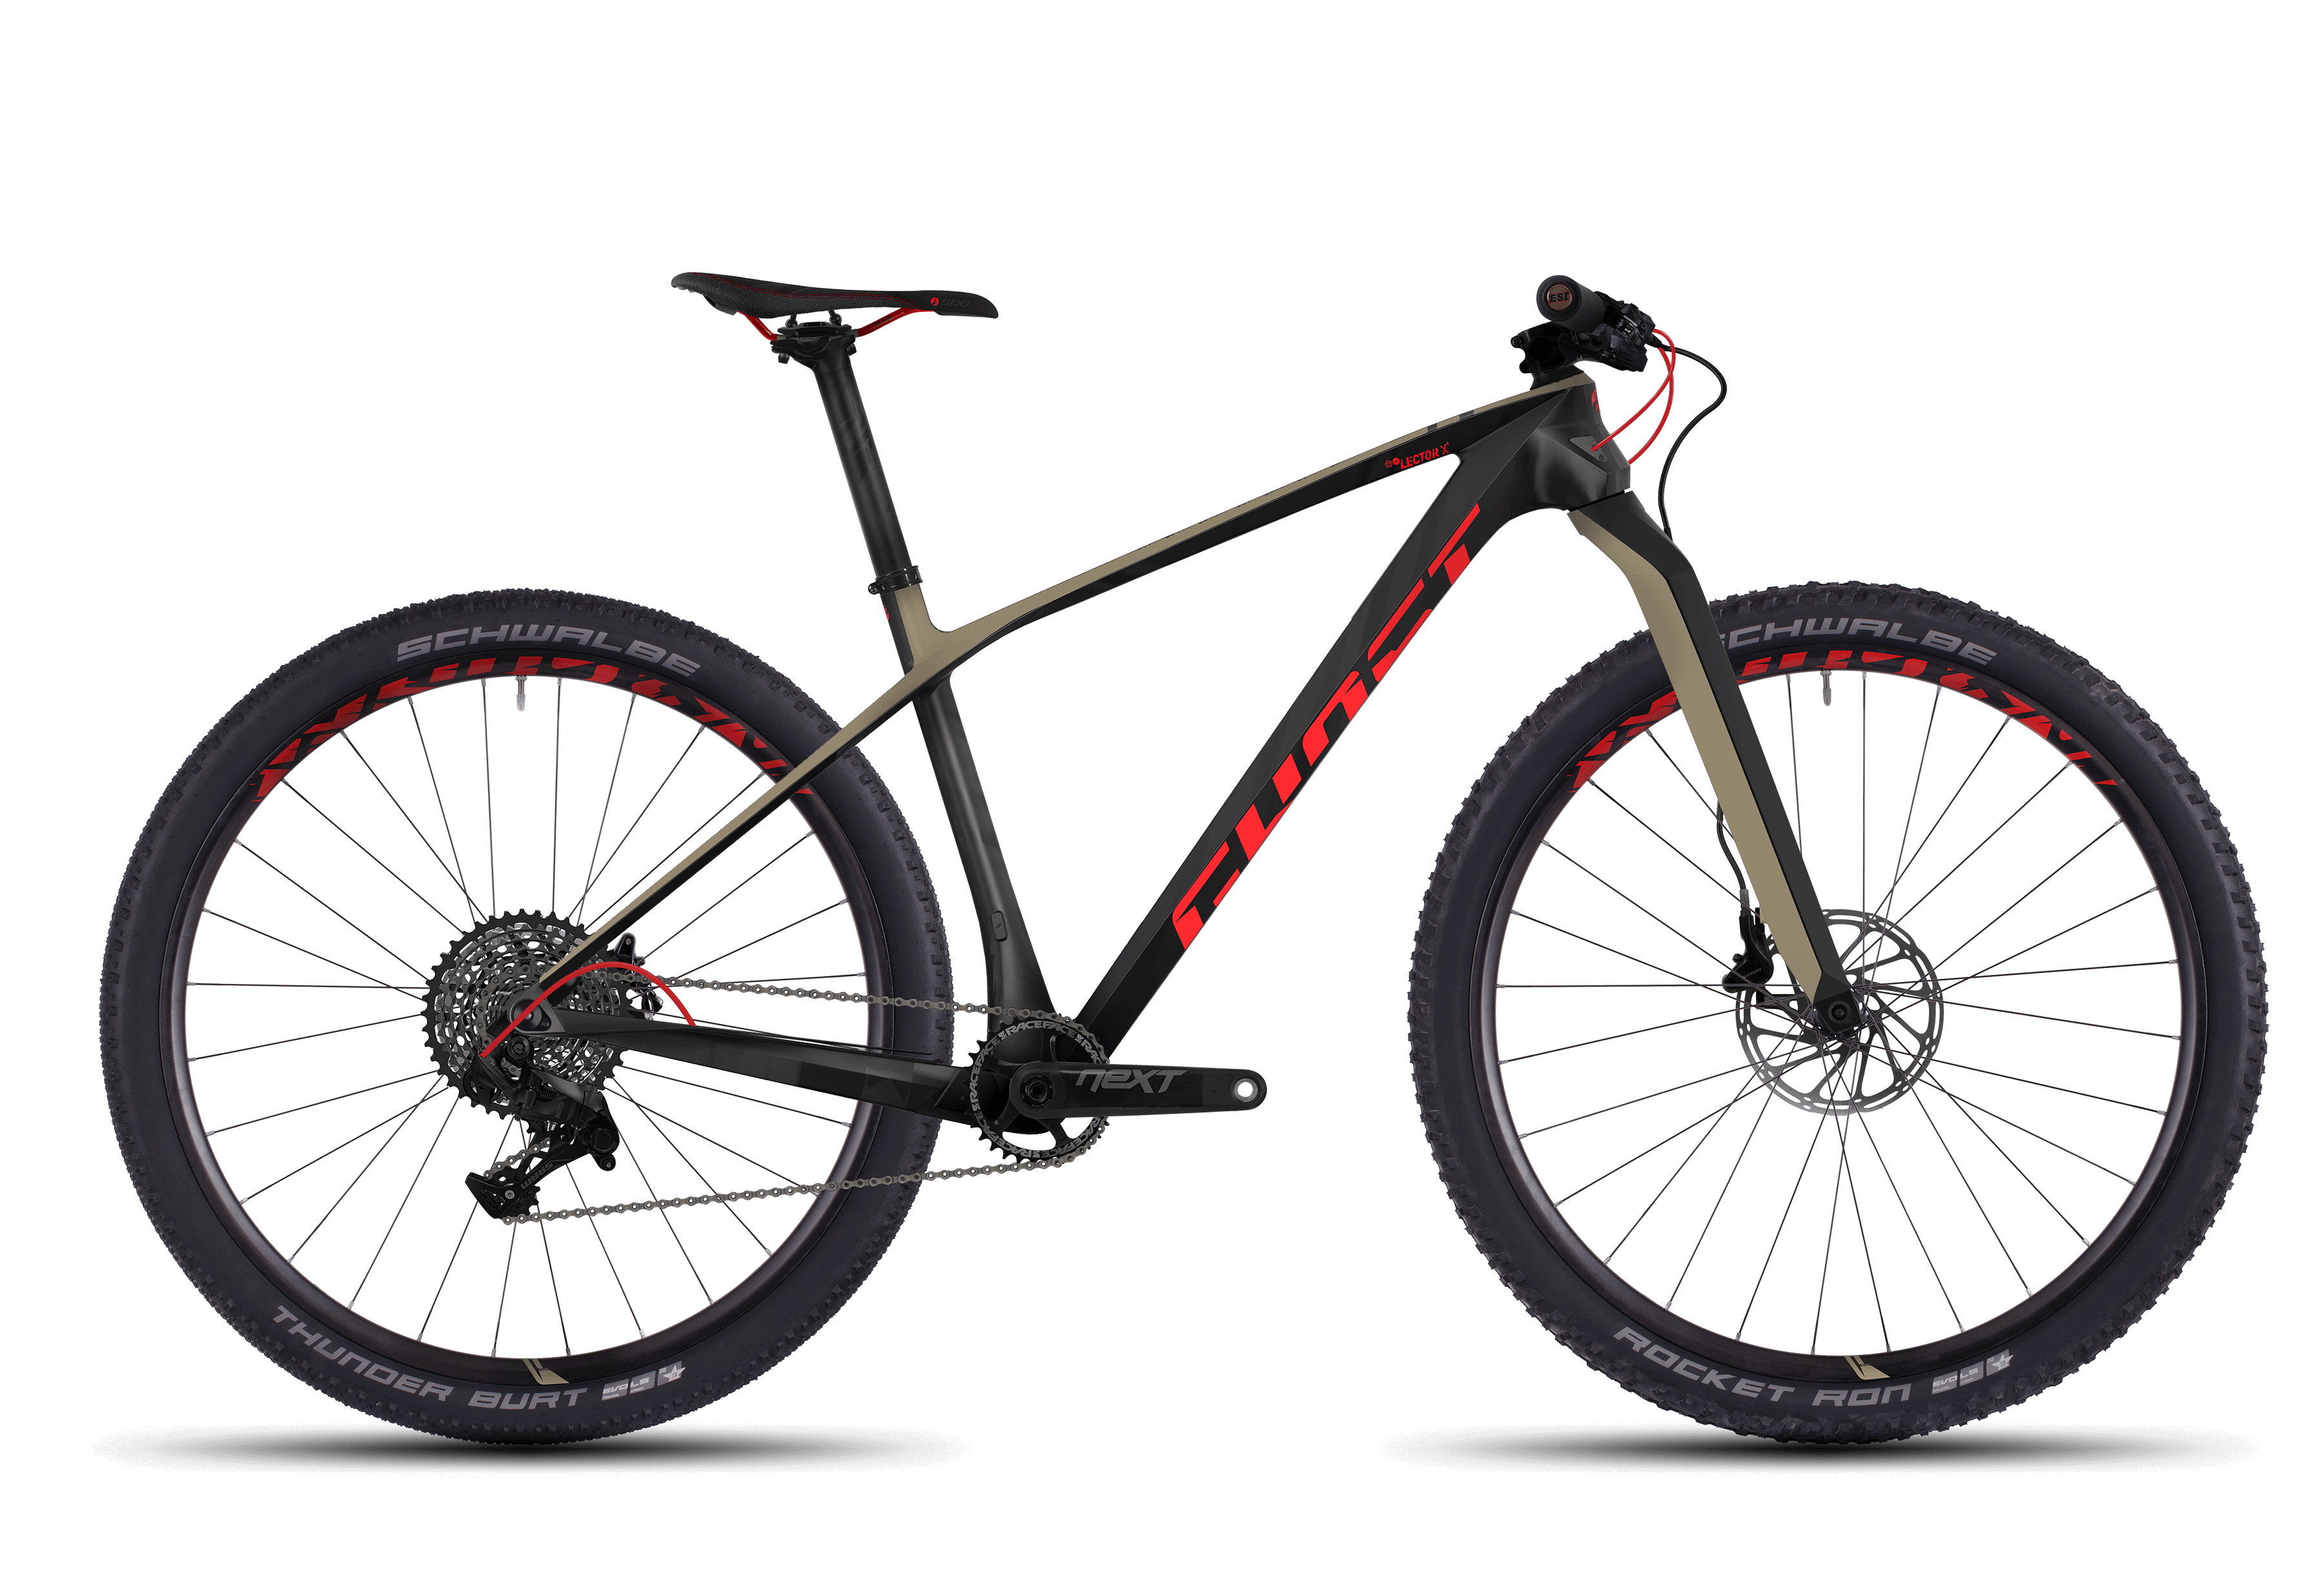 LECTOR X 8 UC Mountainbike MTB / Fahrrad Hardtail GHOST